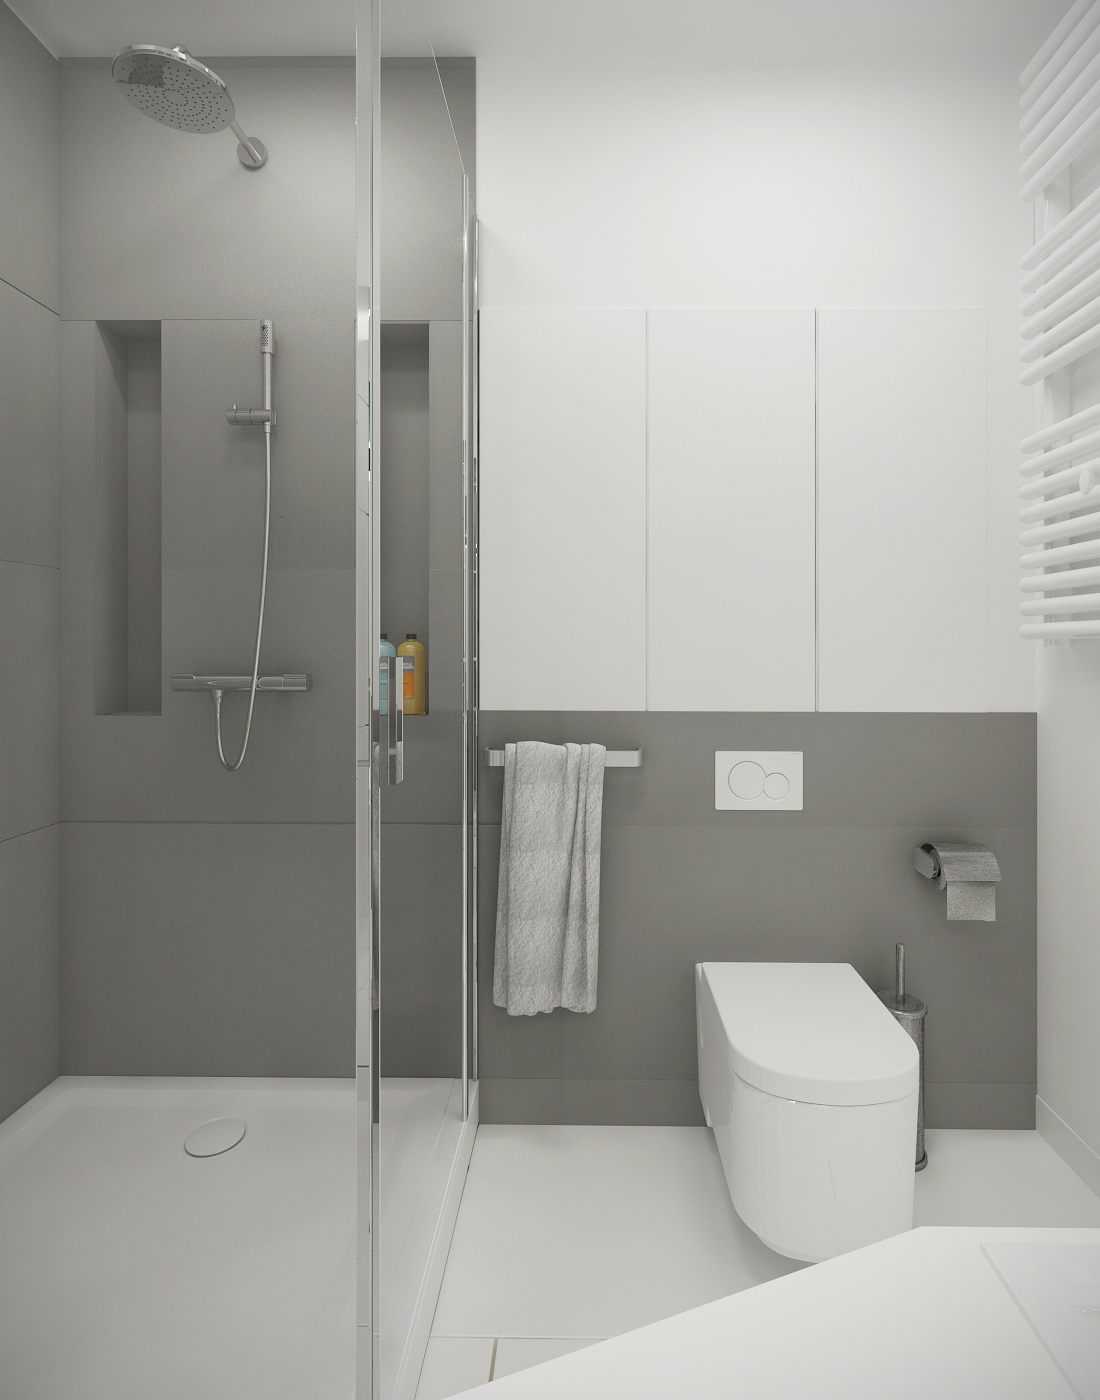 cool grey white bathroom images decoration ideas golime grey white bathroom ideas decor ideasdecor ideas